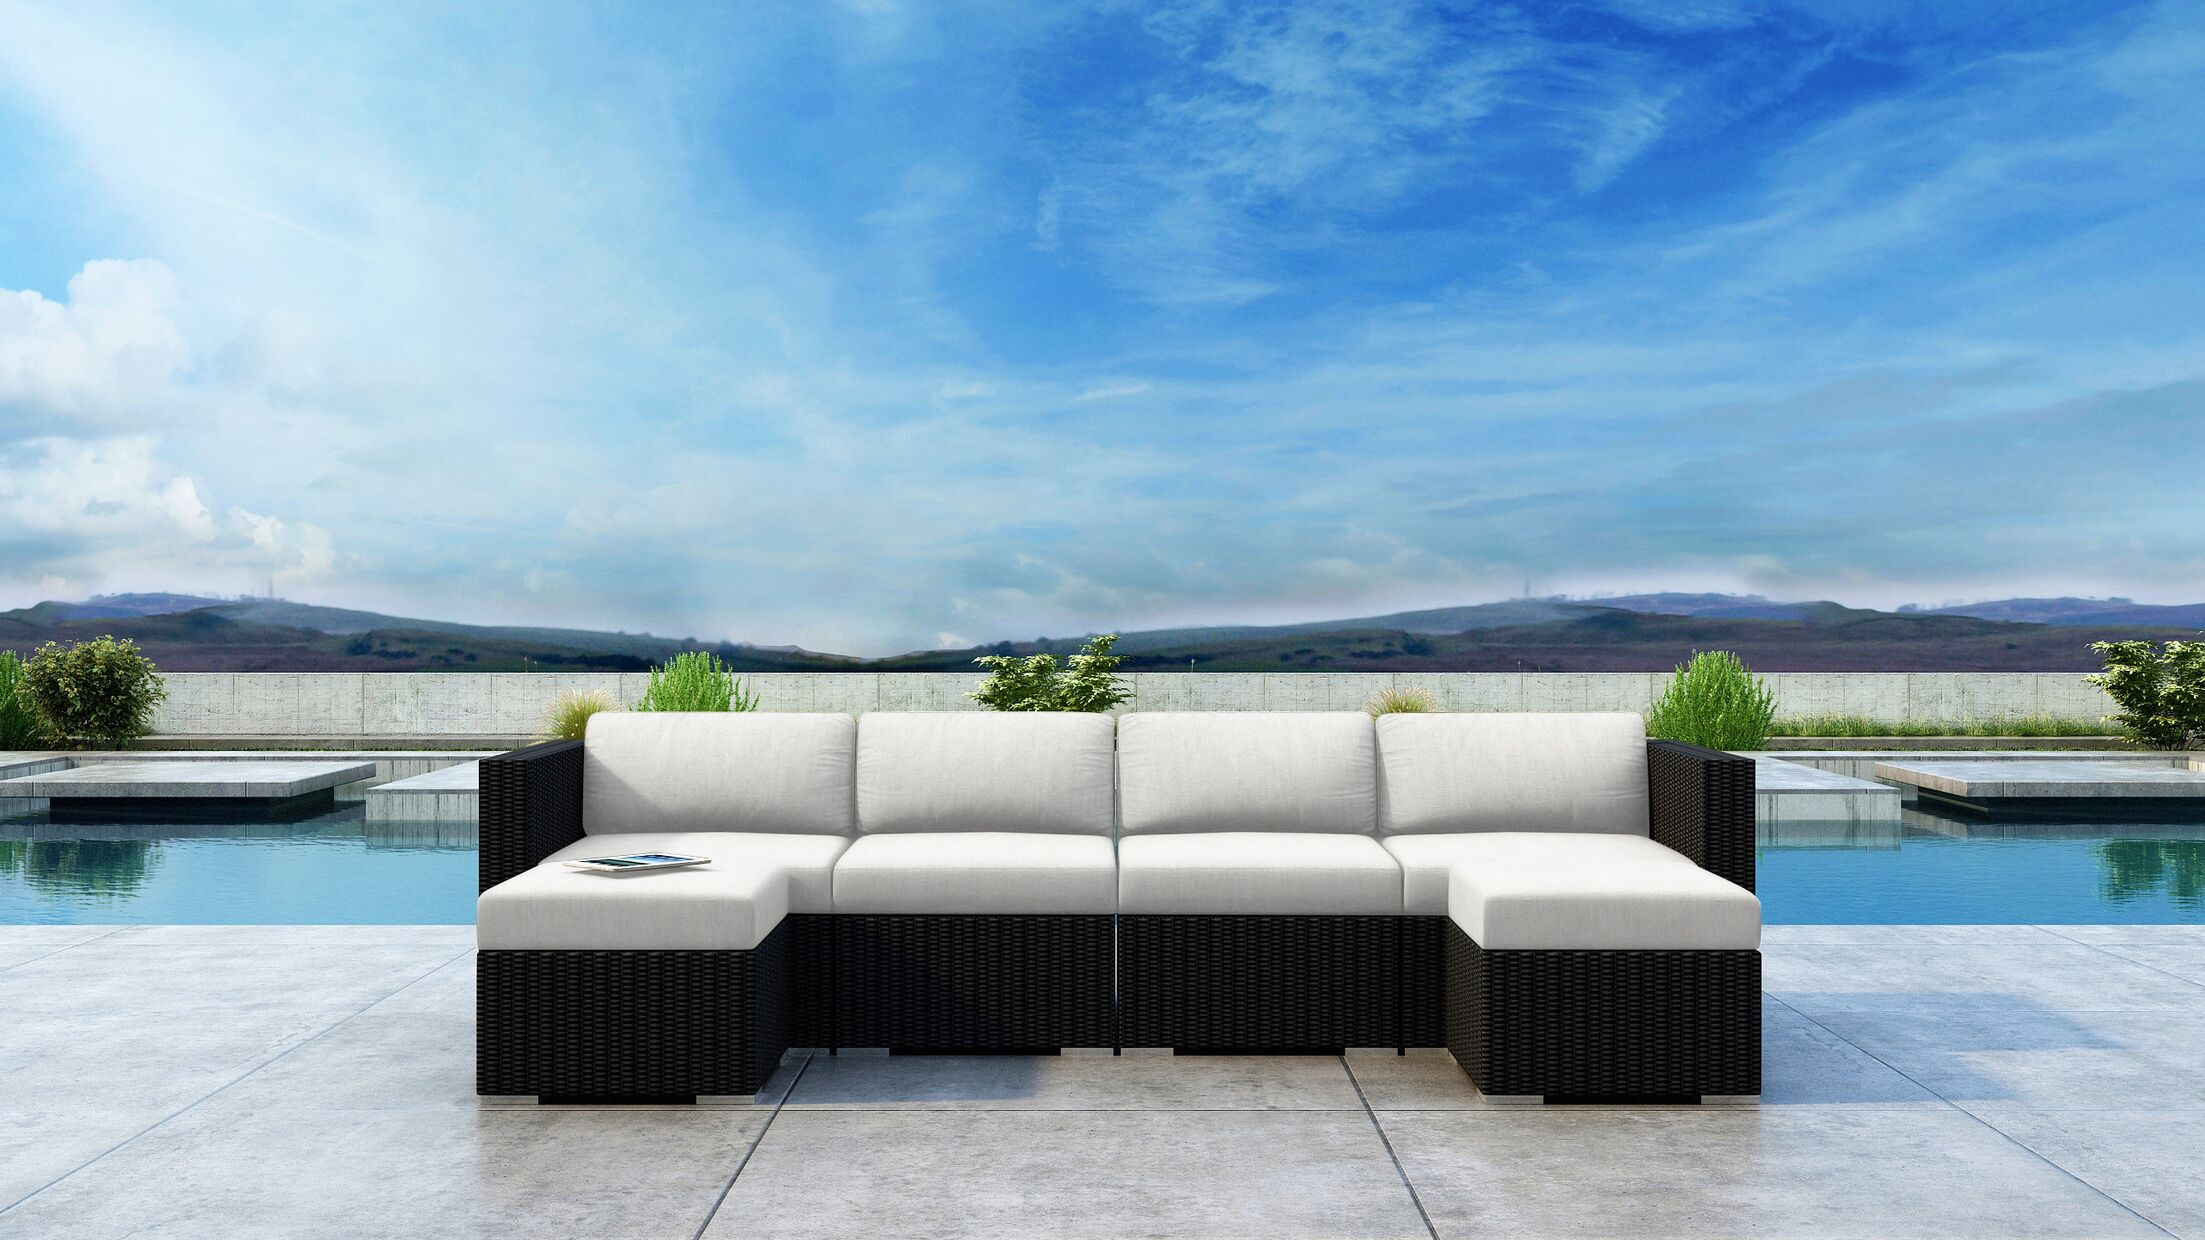 Glendale 6 Piece Sectional Set with Sunbrella Cushion Cushion Color: Canvas Natural